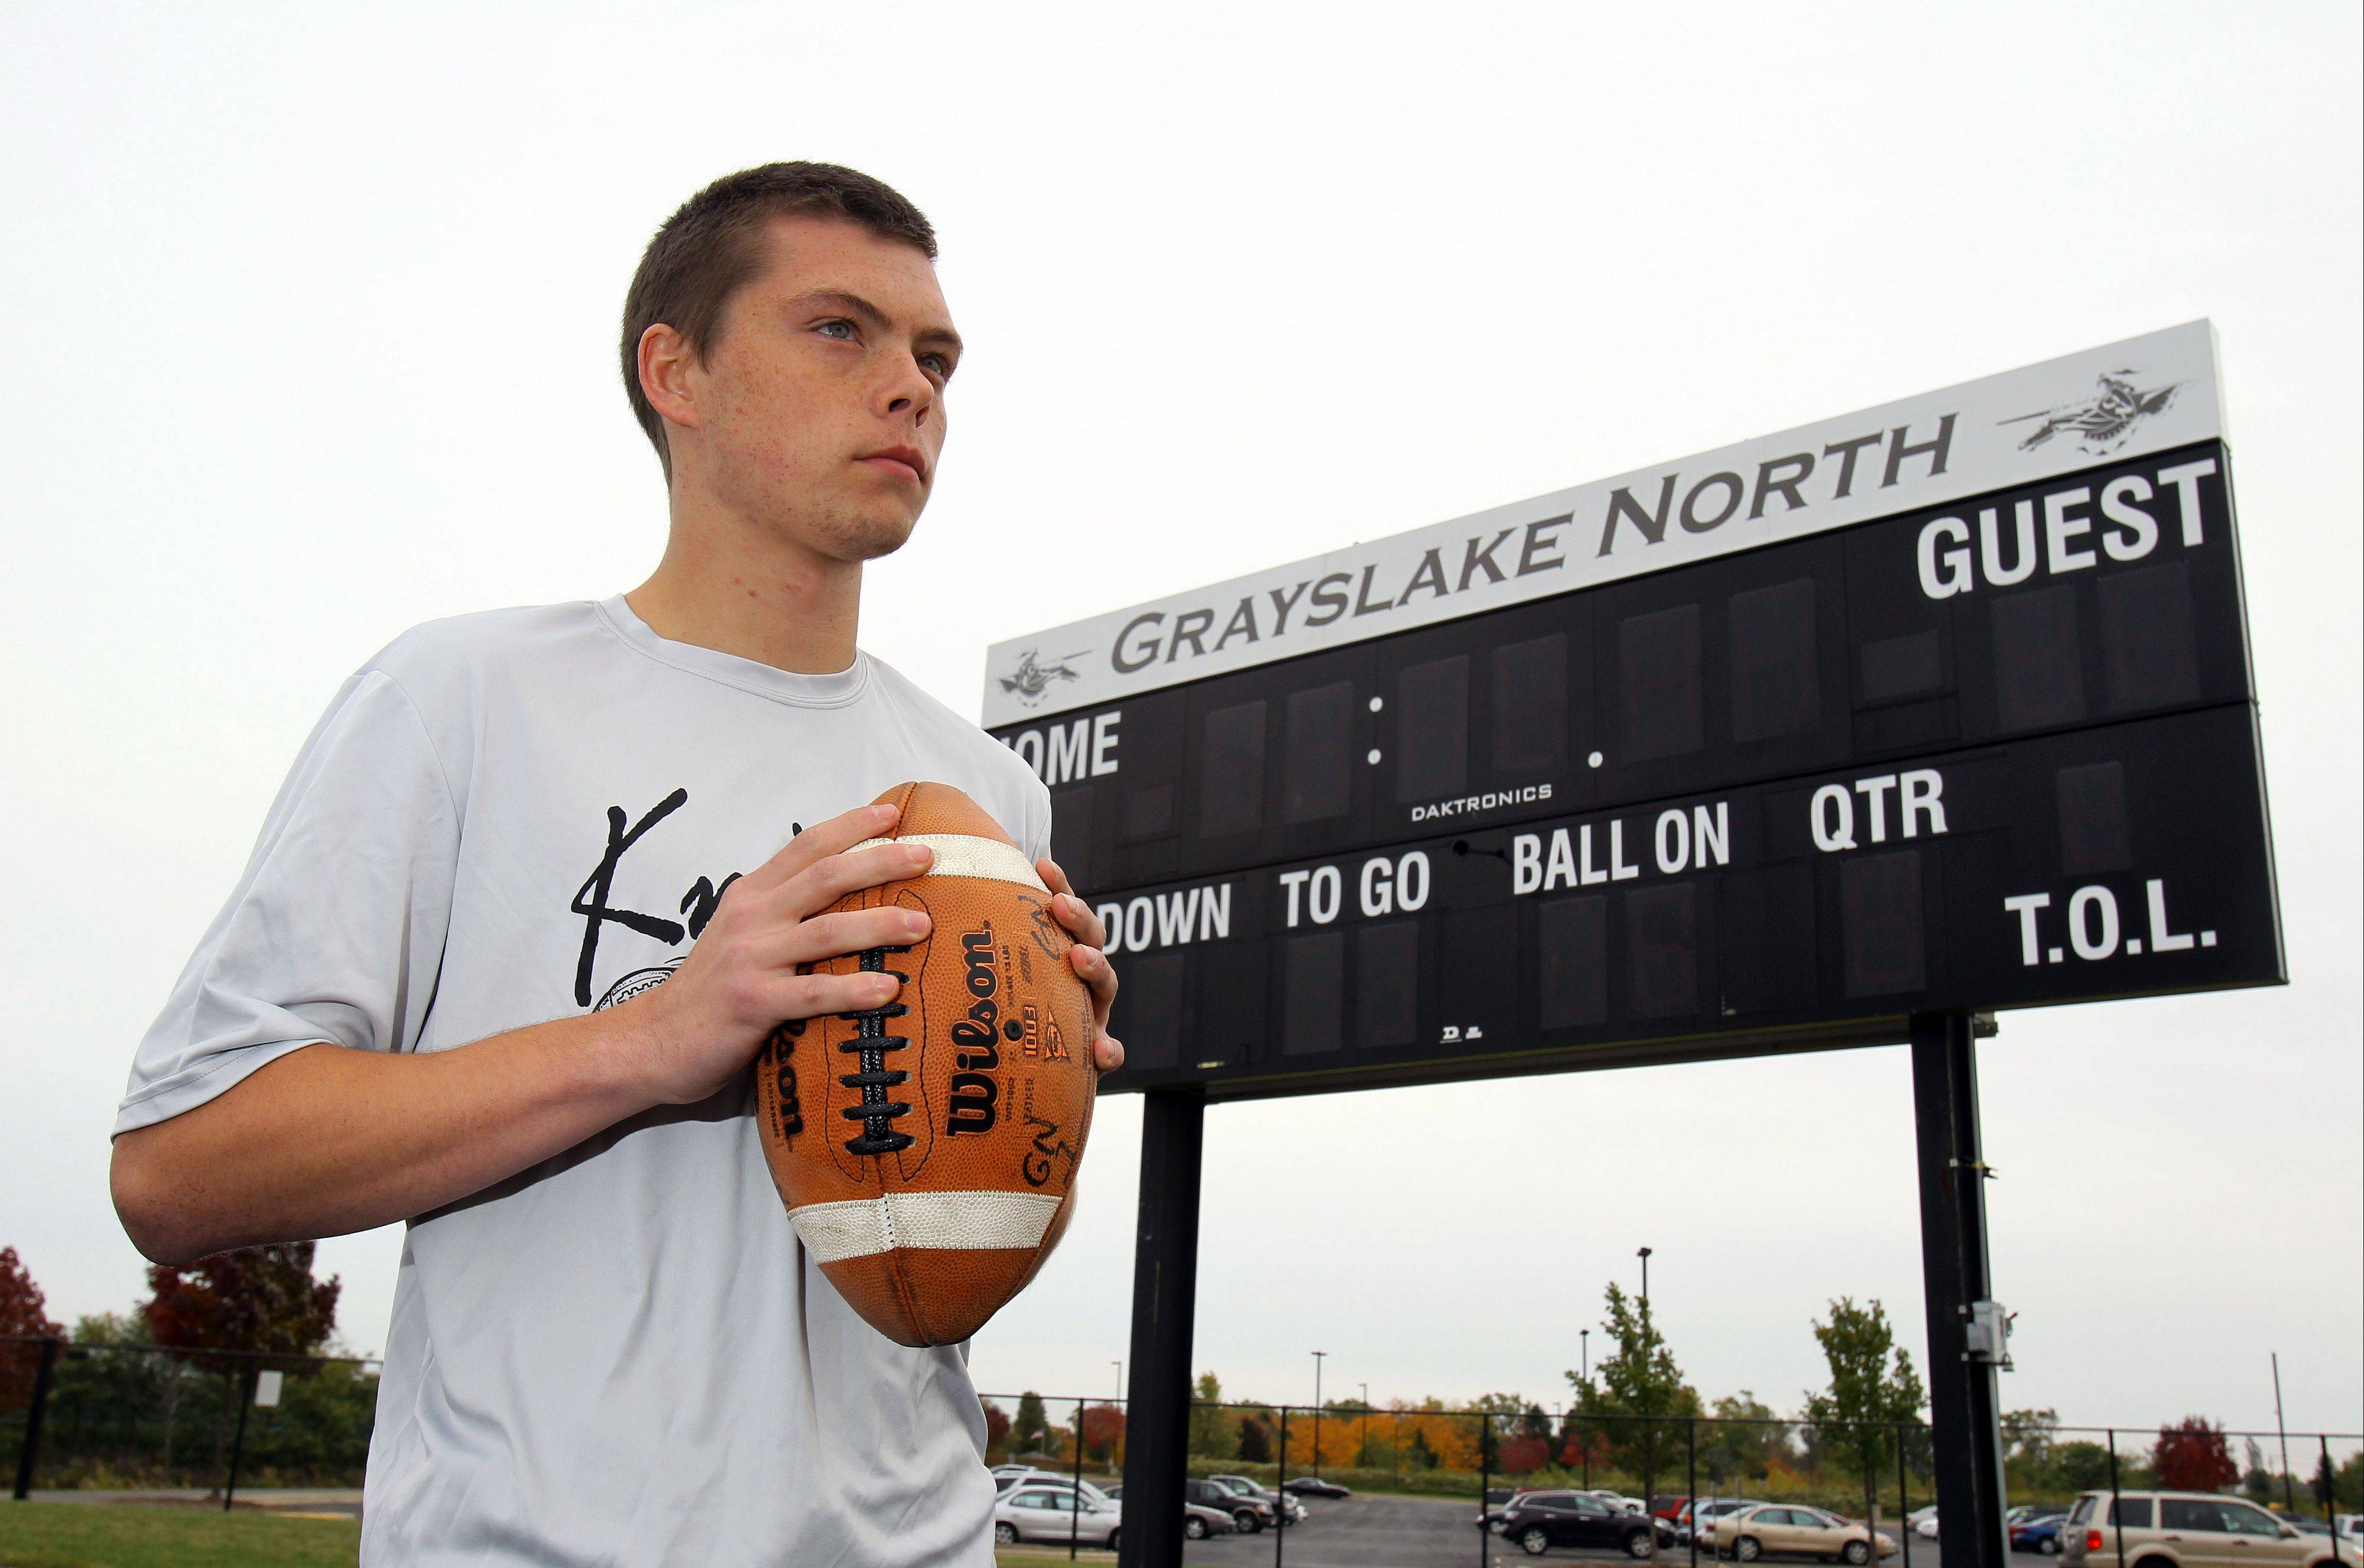 Former Grayslake North defensive back Jake Geary has taken on the role of assistant coach after graduating last spring.